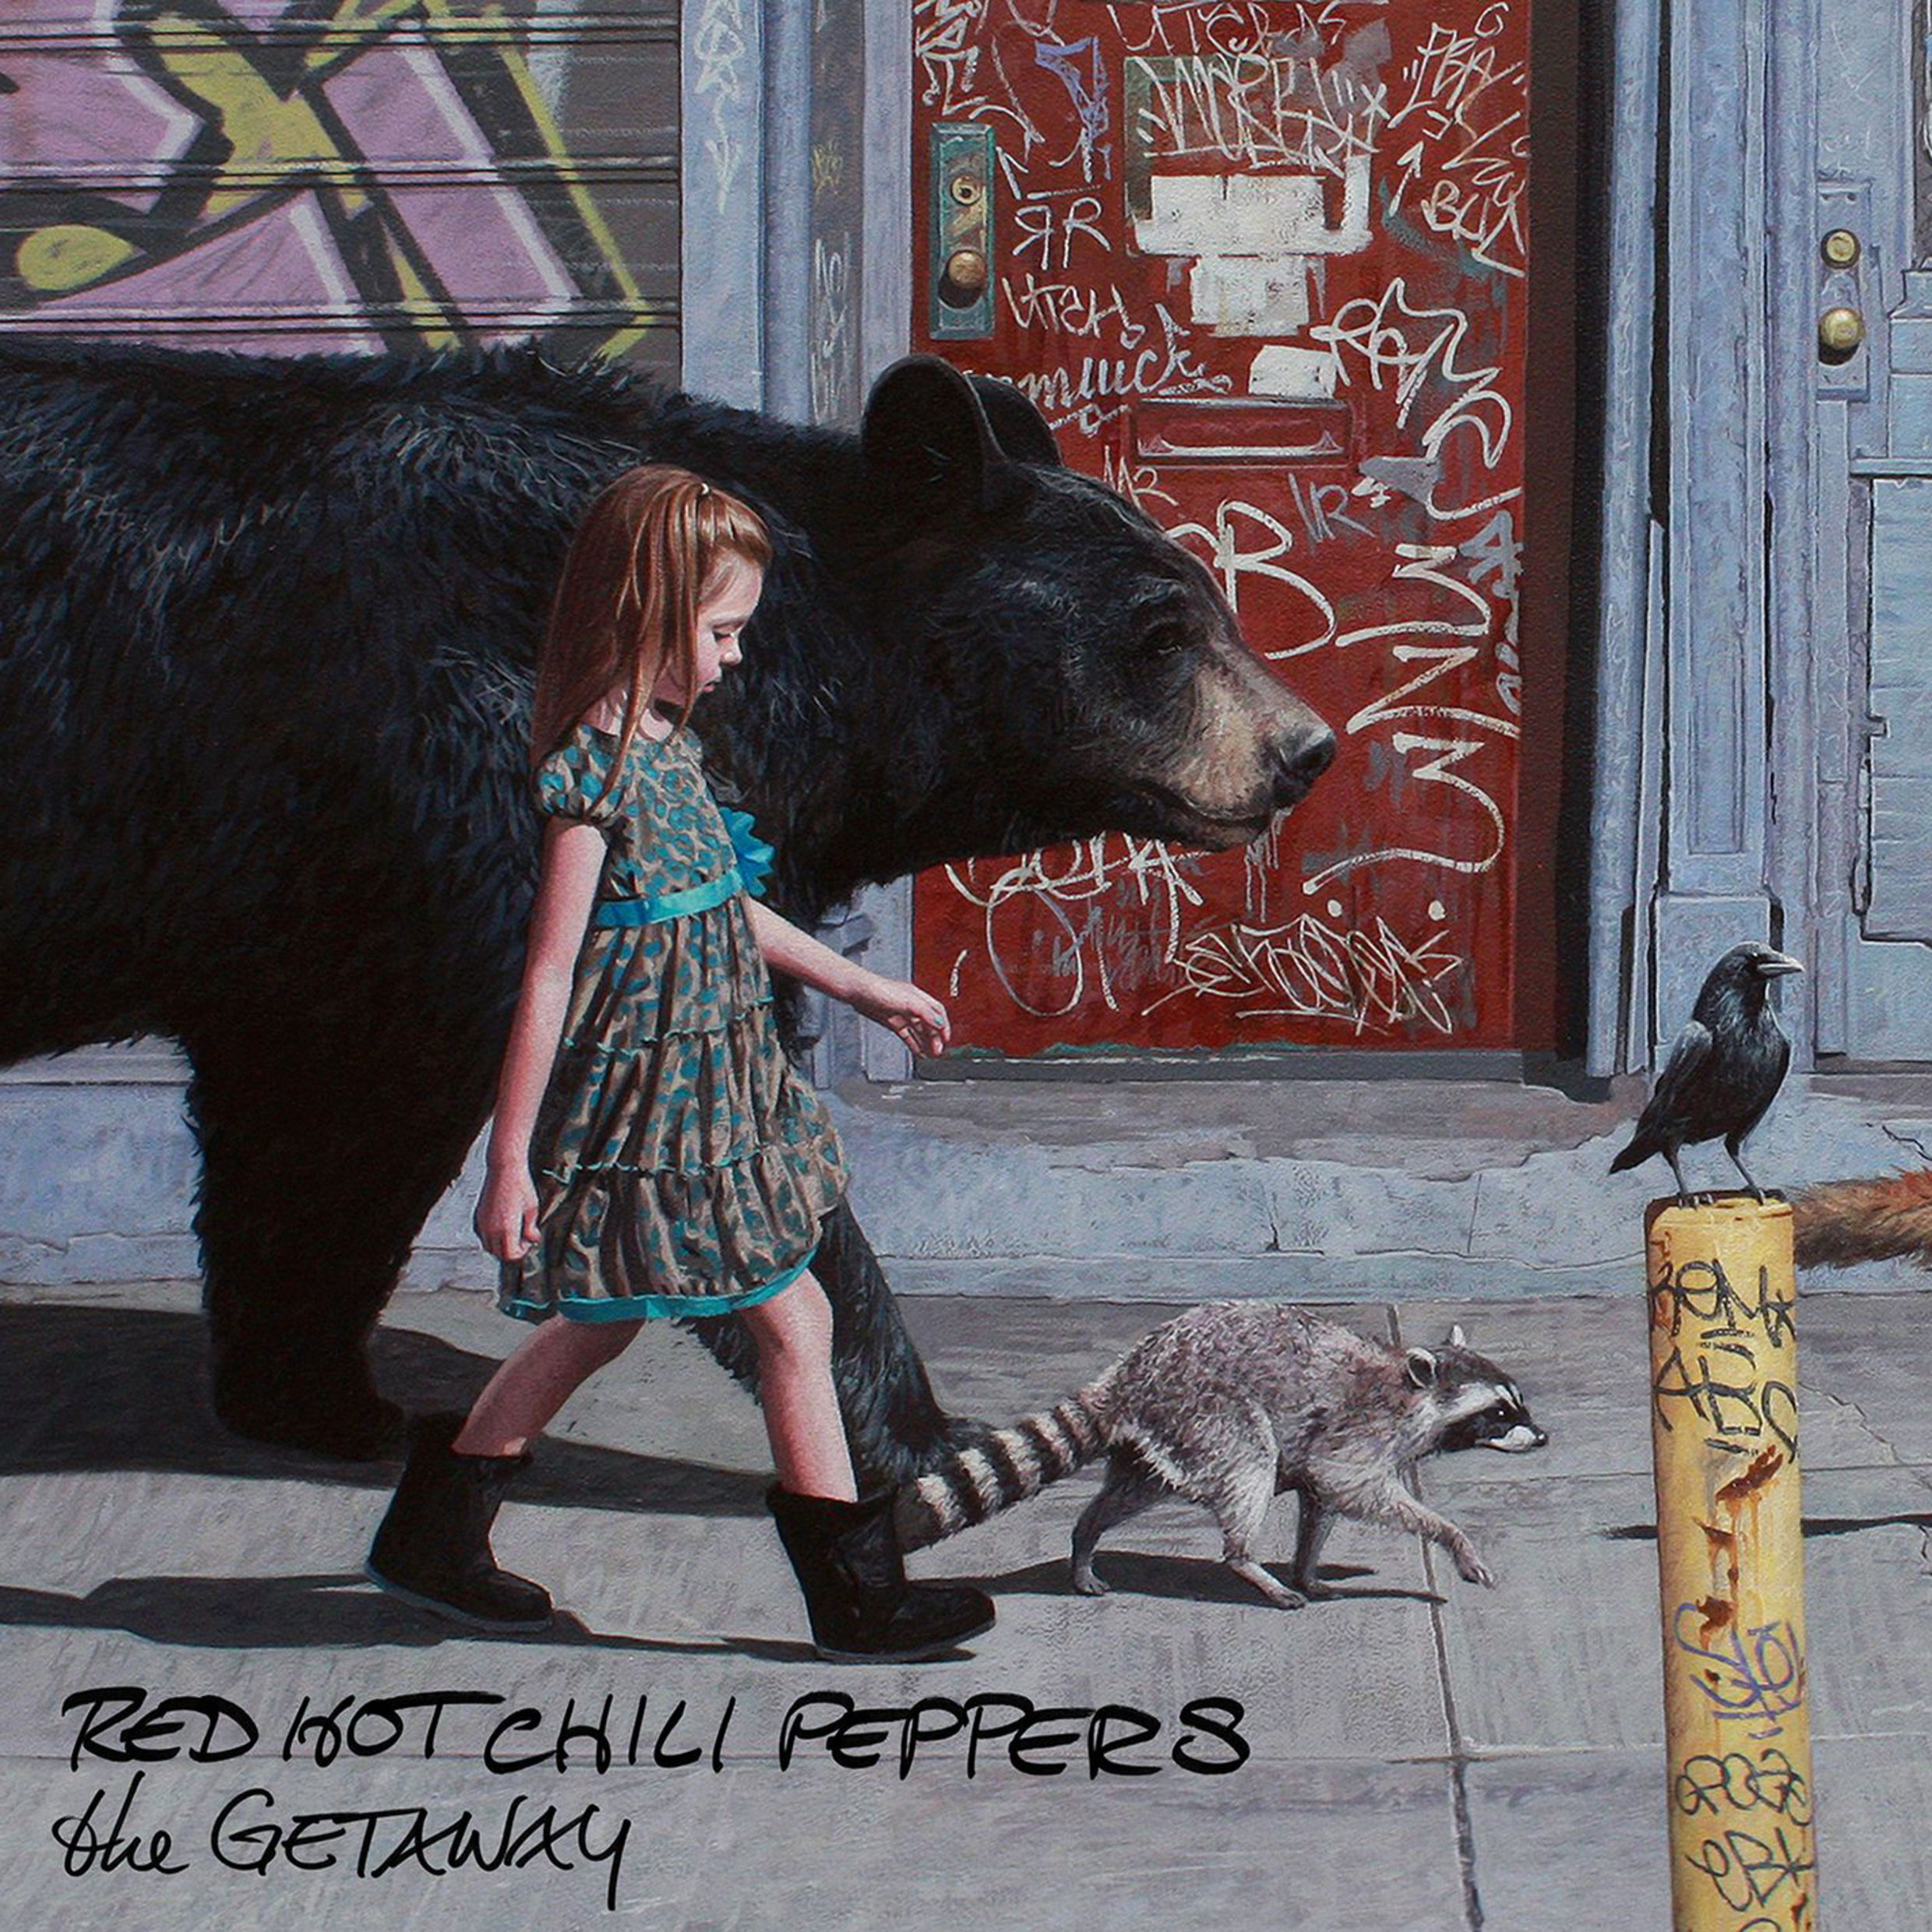 Red Hot Chili Peppers - The Getaway - Album Cover